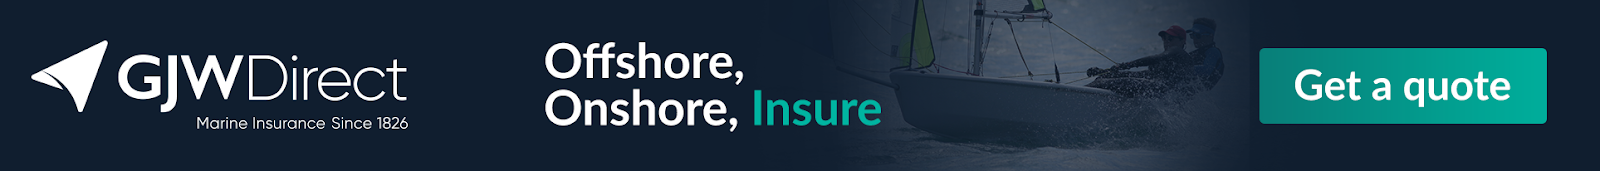 Get a quote for all inclusive Dinghy insurance with GJW